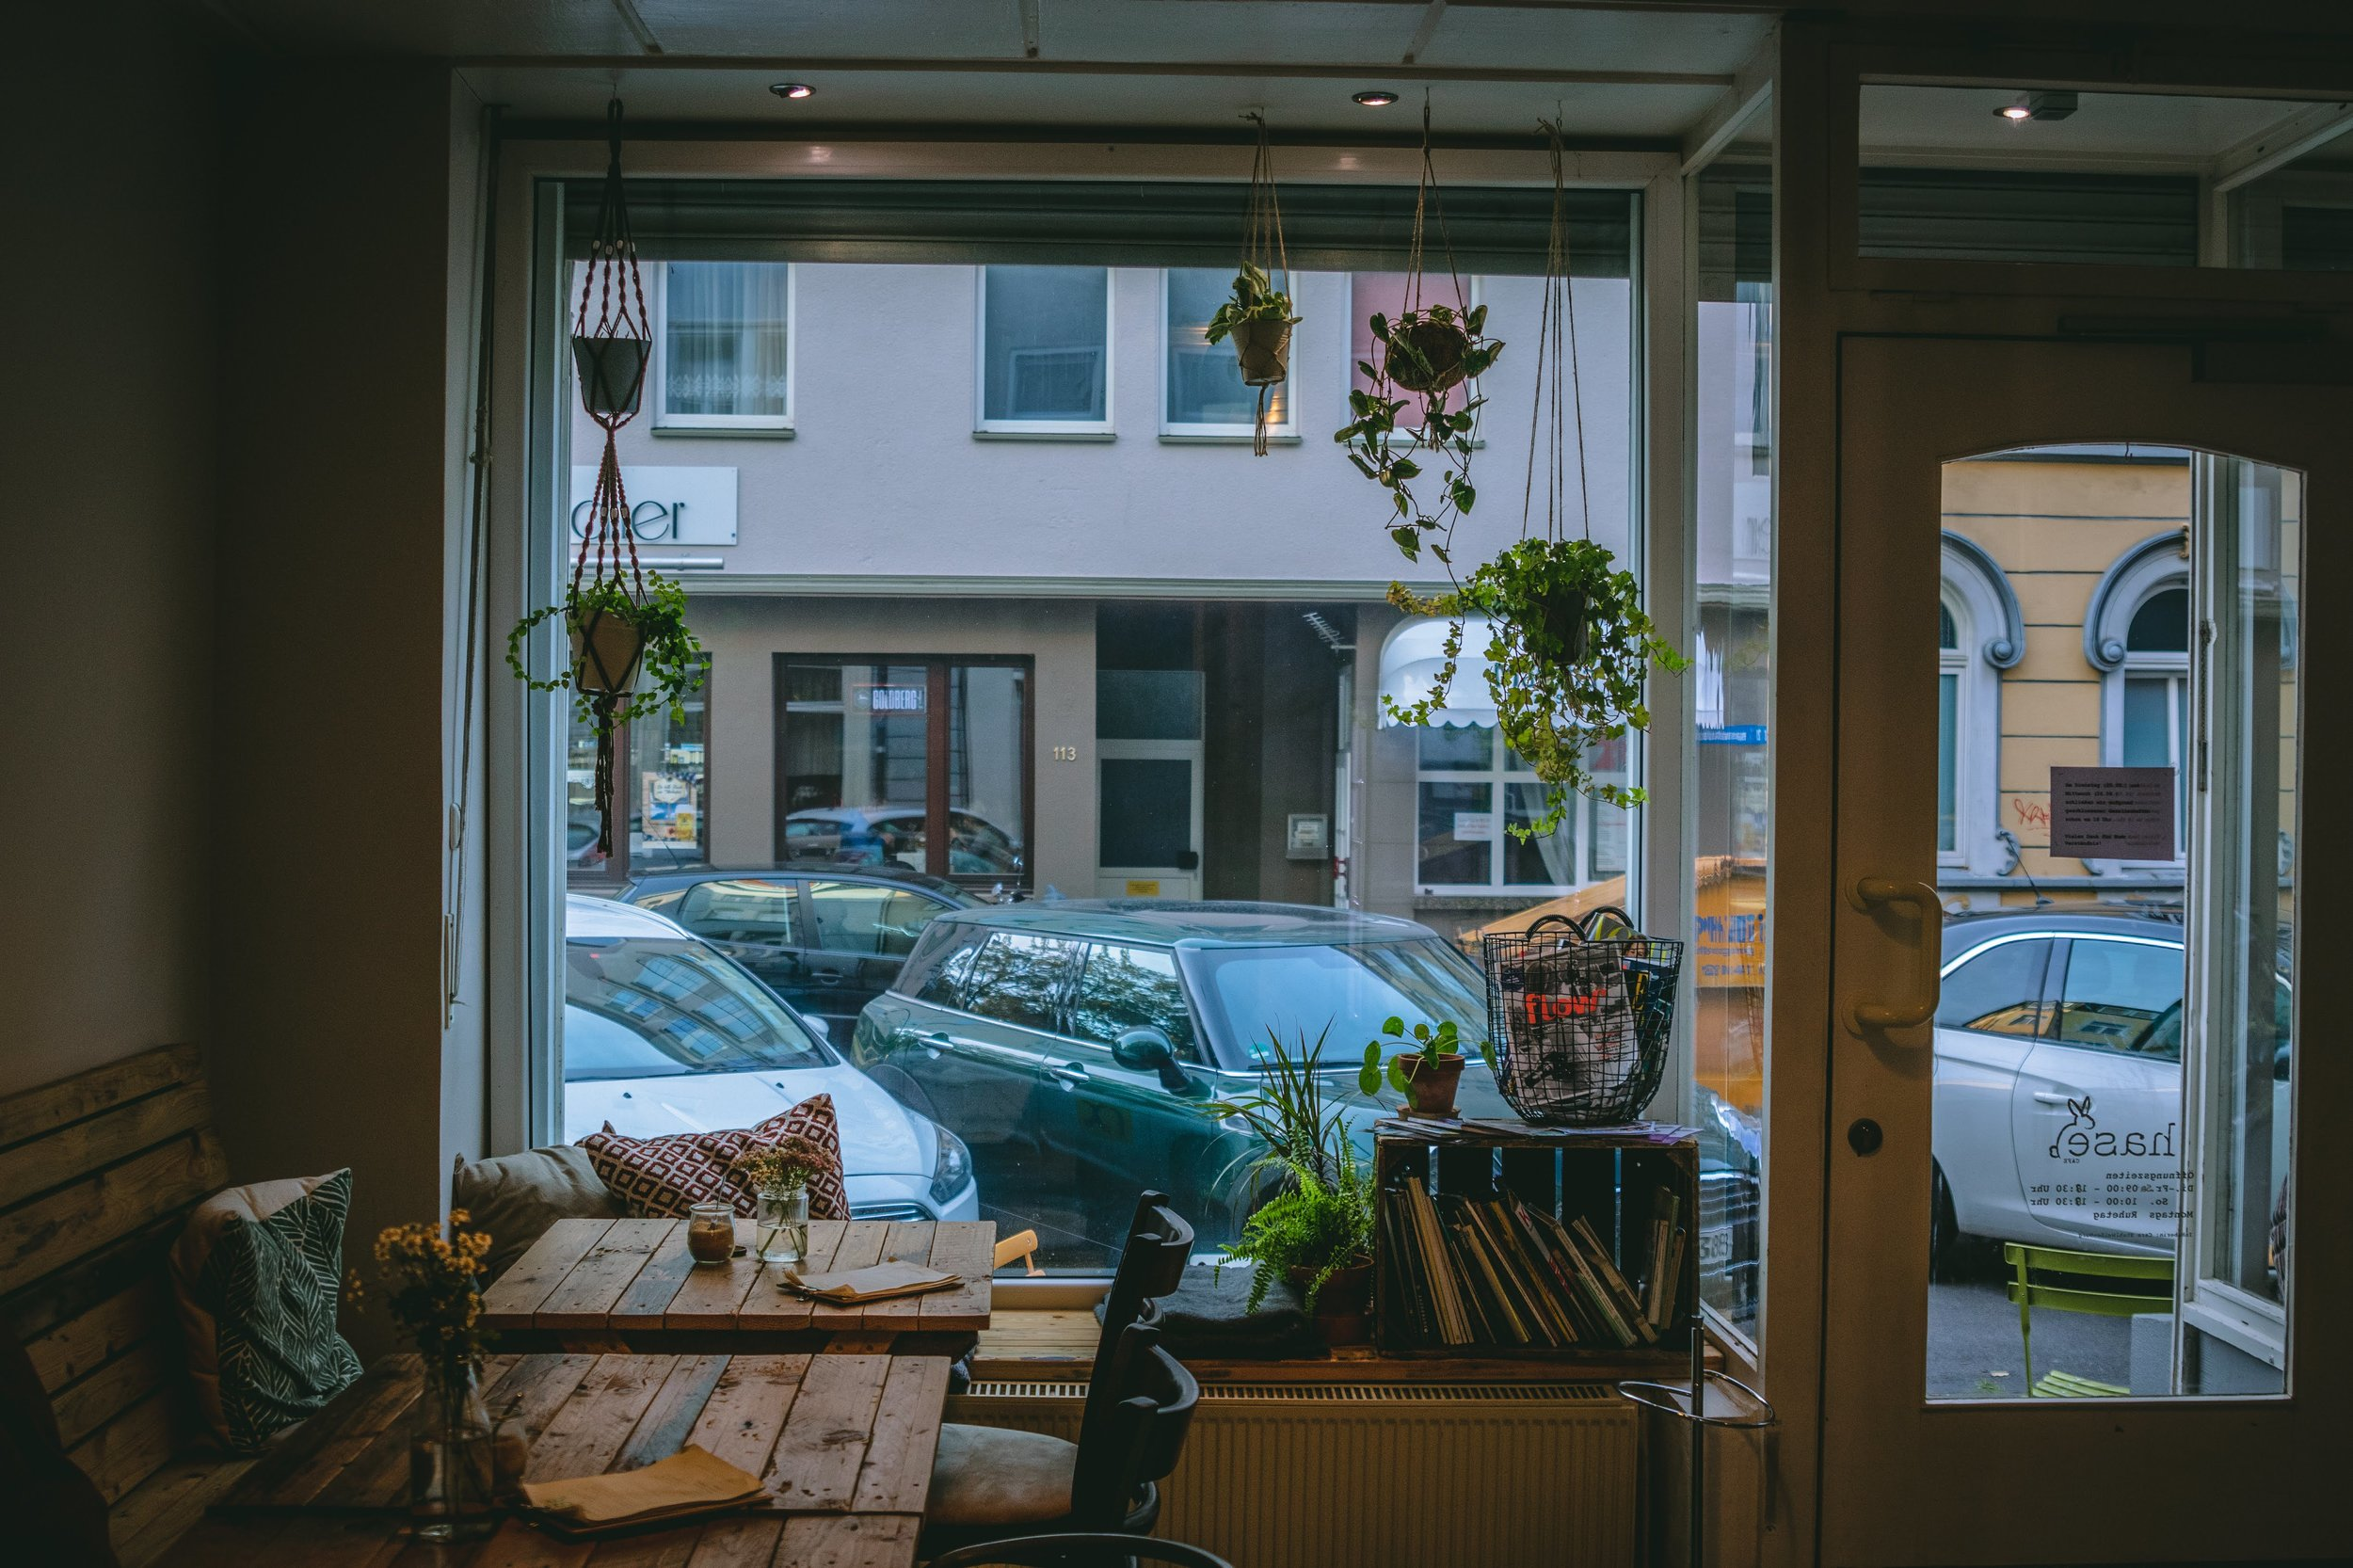 Cafe Hase - Aachen, Germany